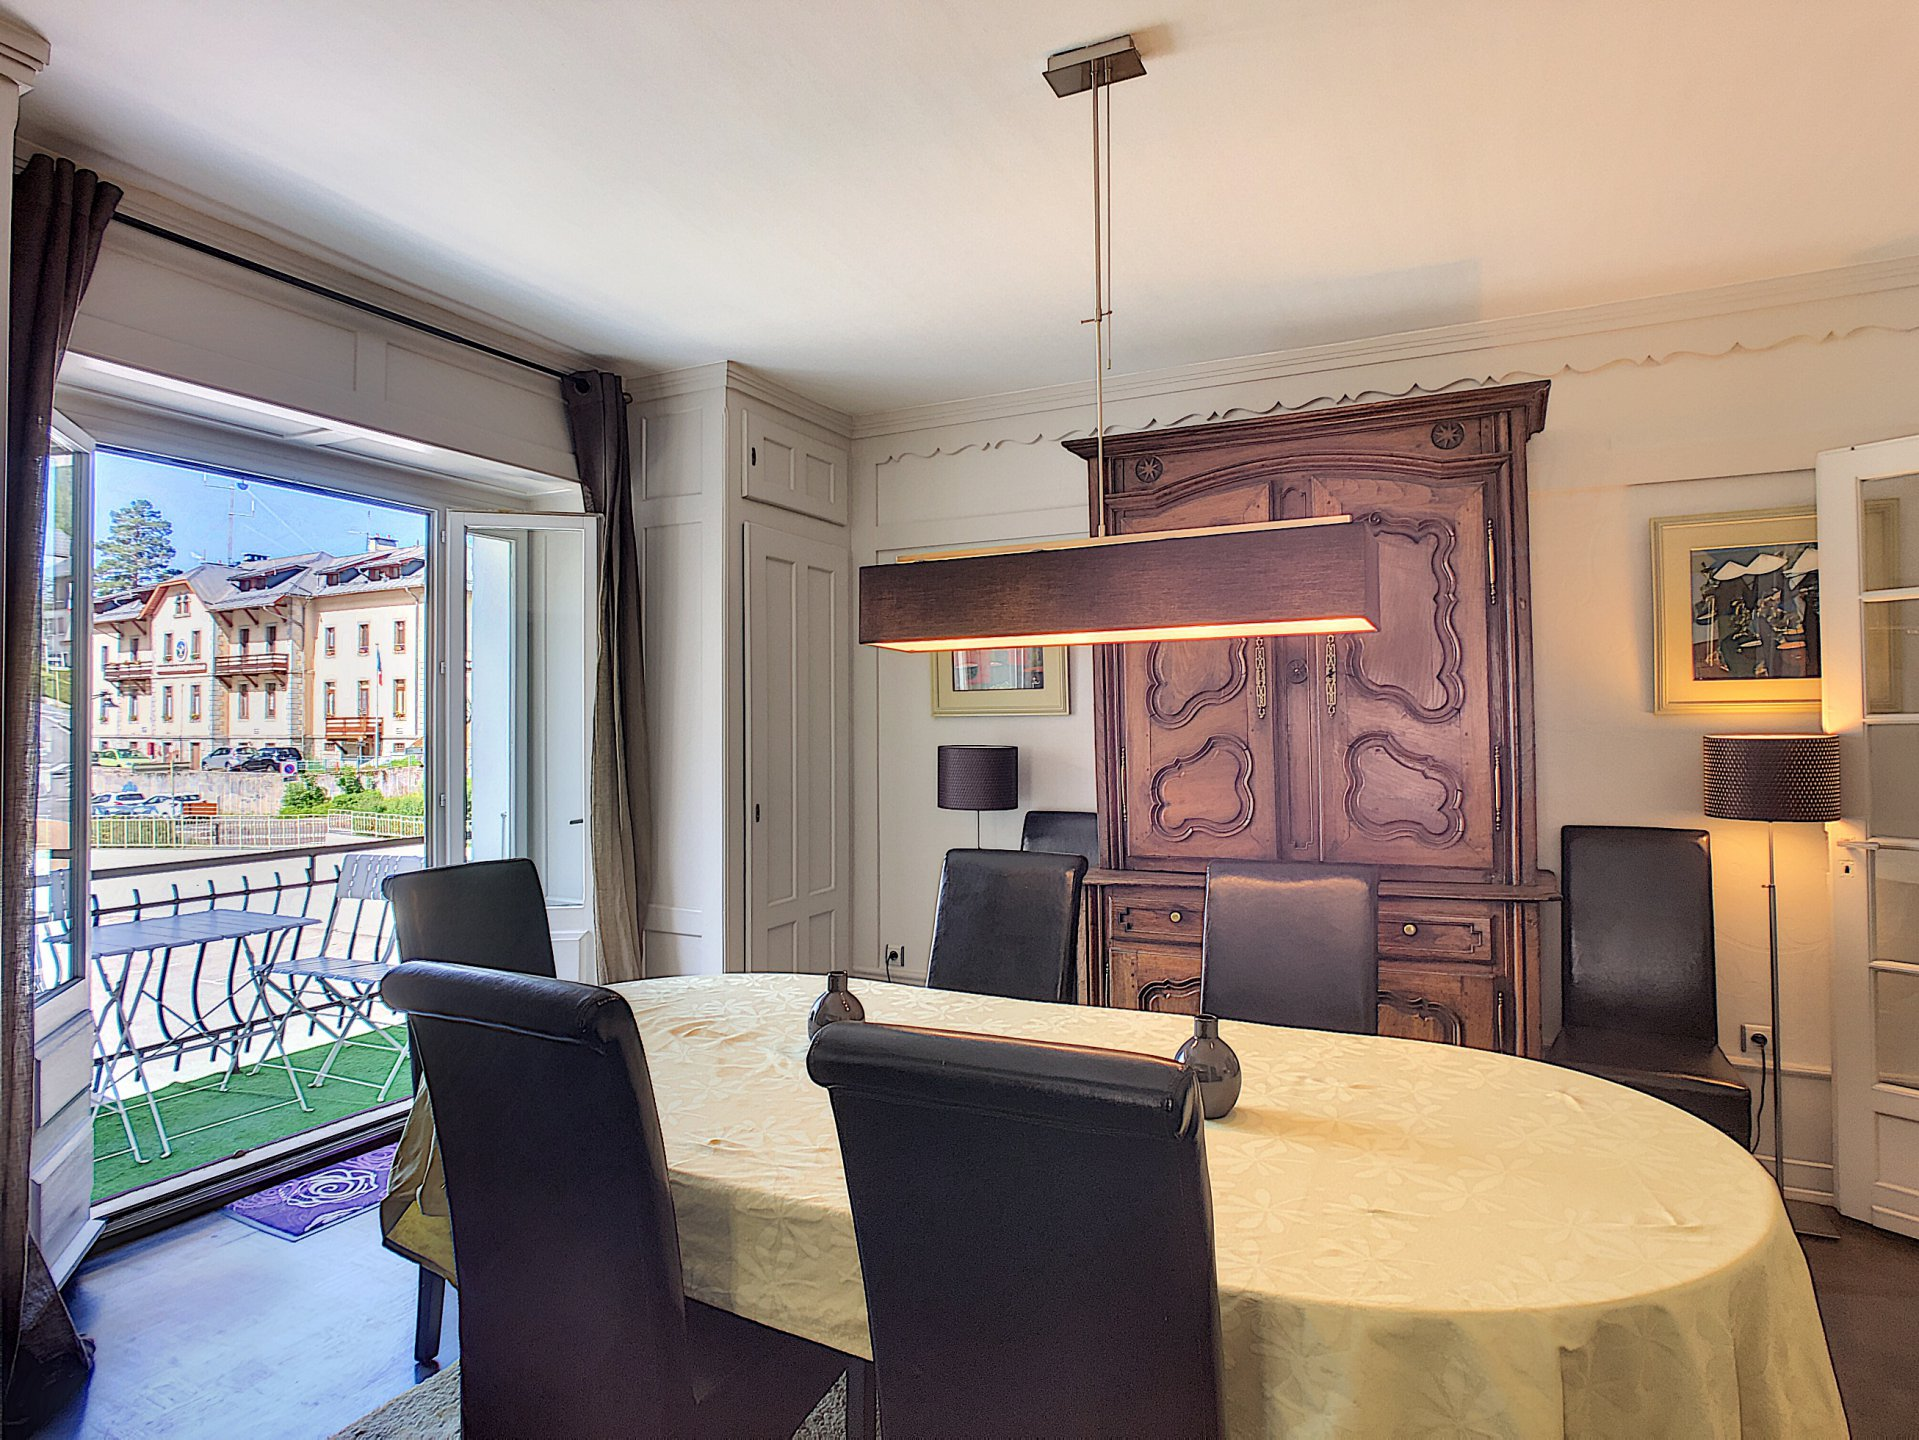 Dining room with balcony access